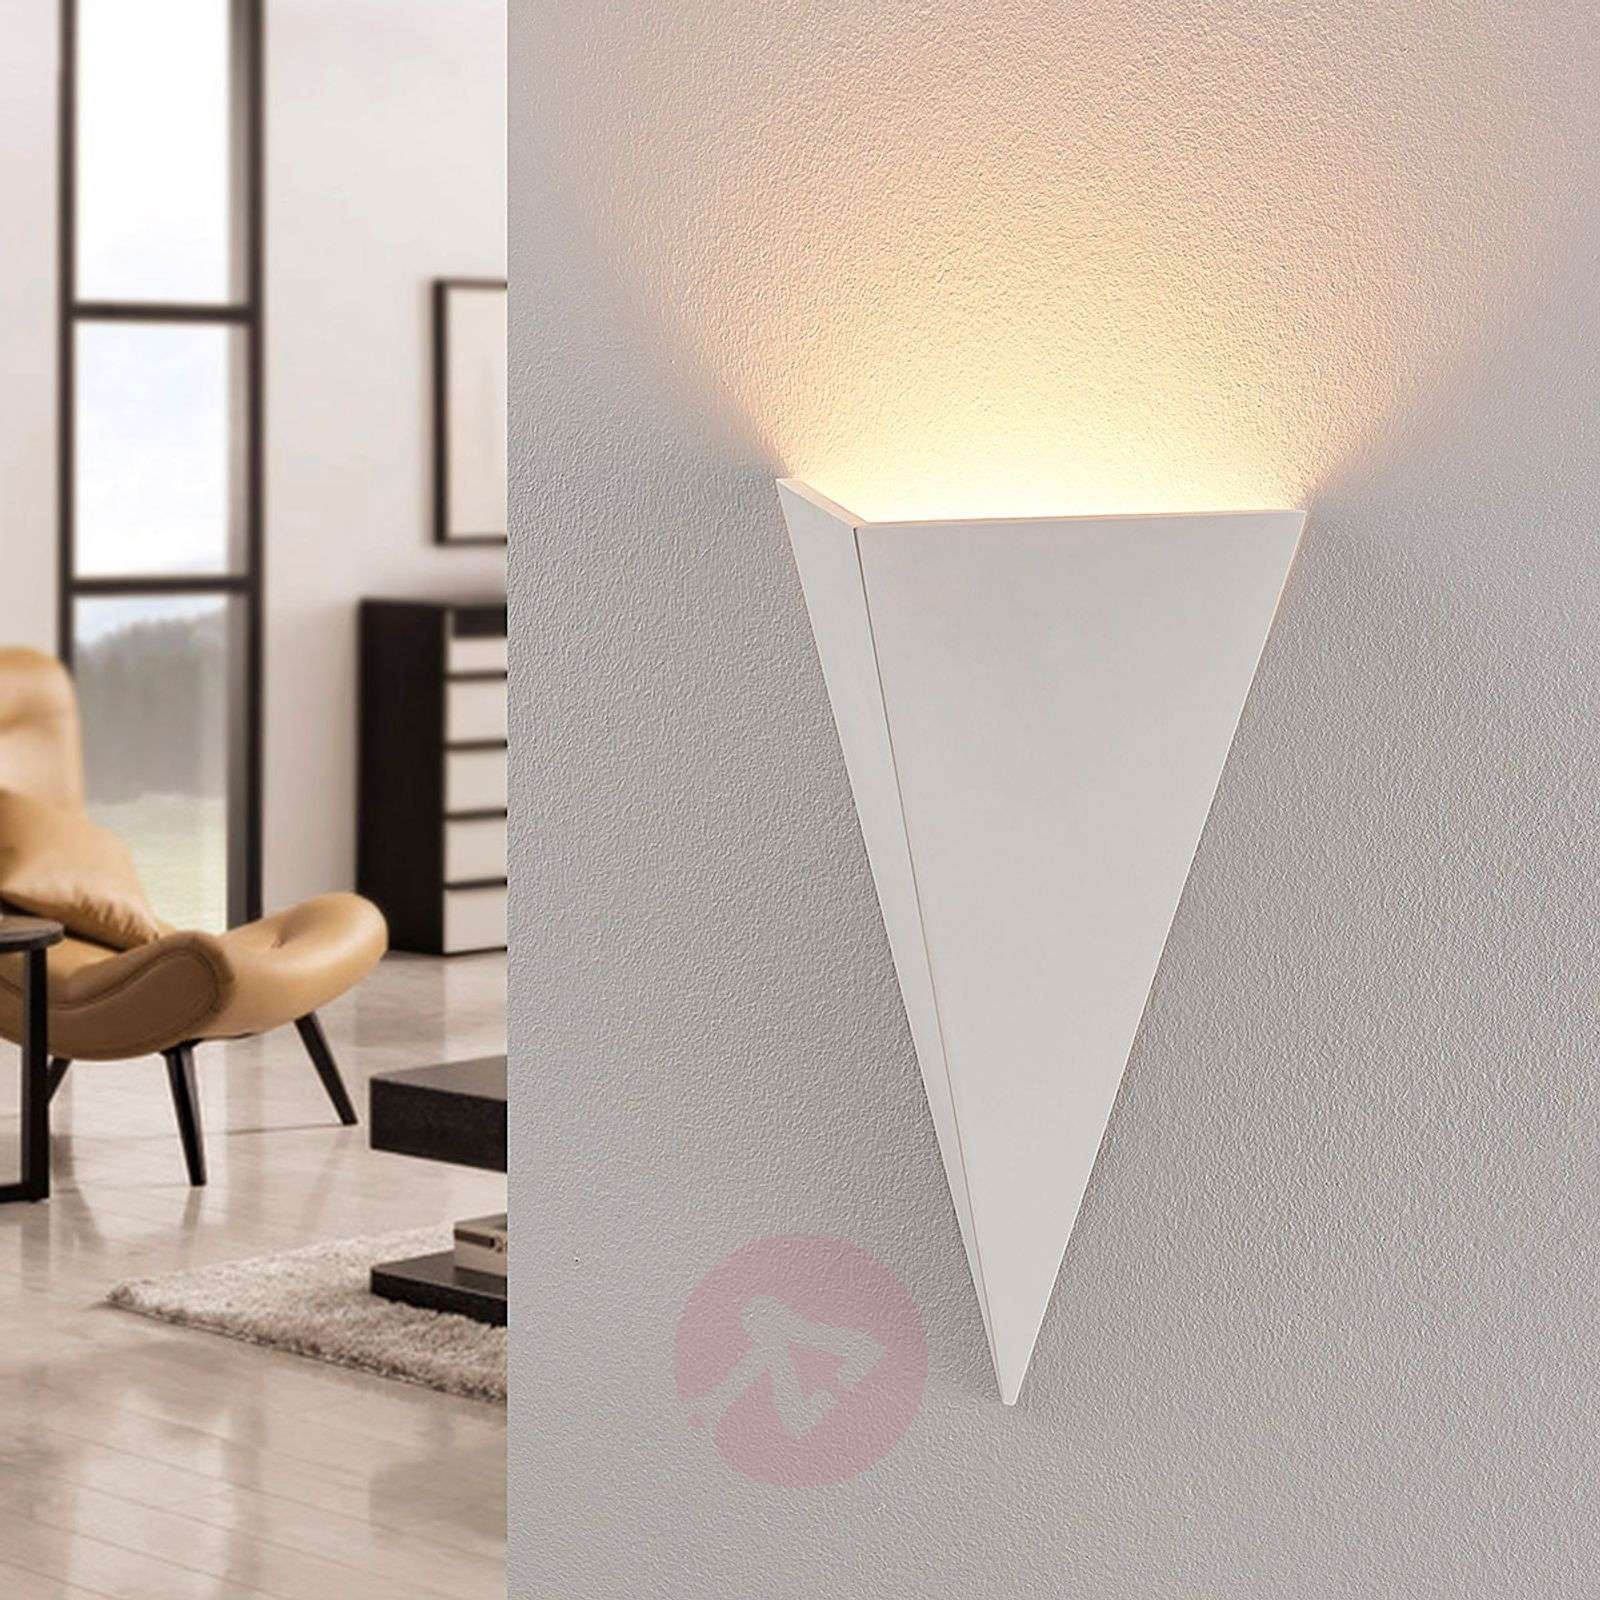 Elegant plaster wall uplighter Luino in white-9624252-02